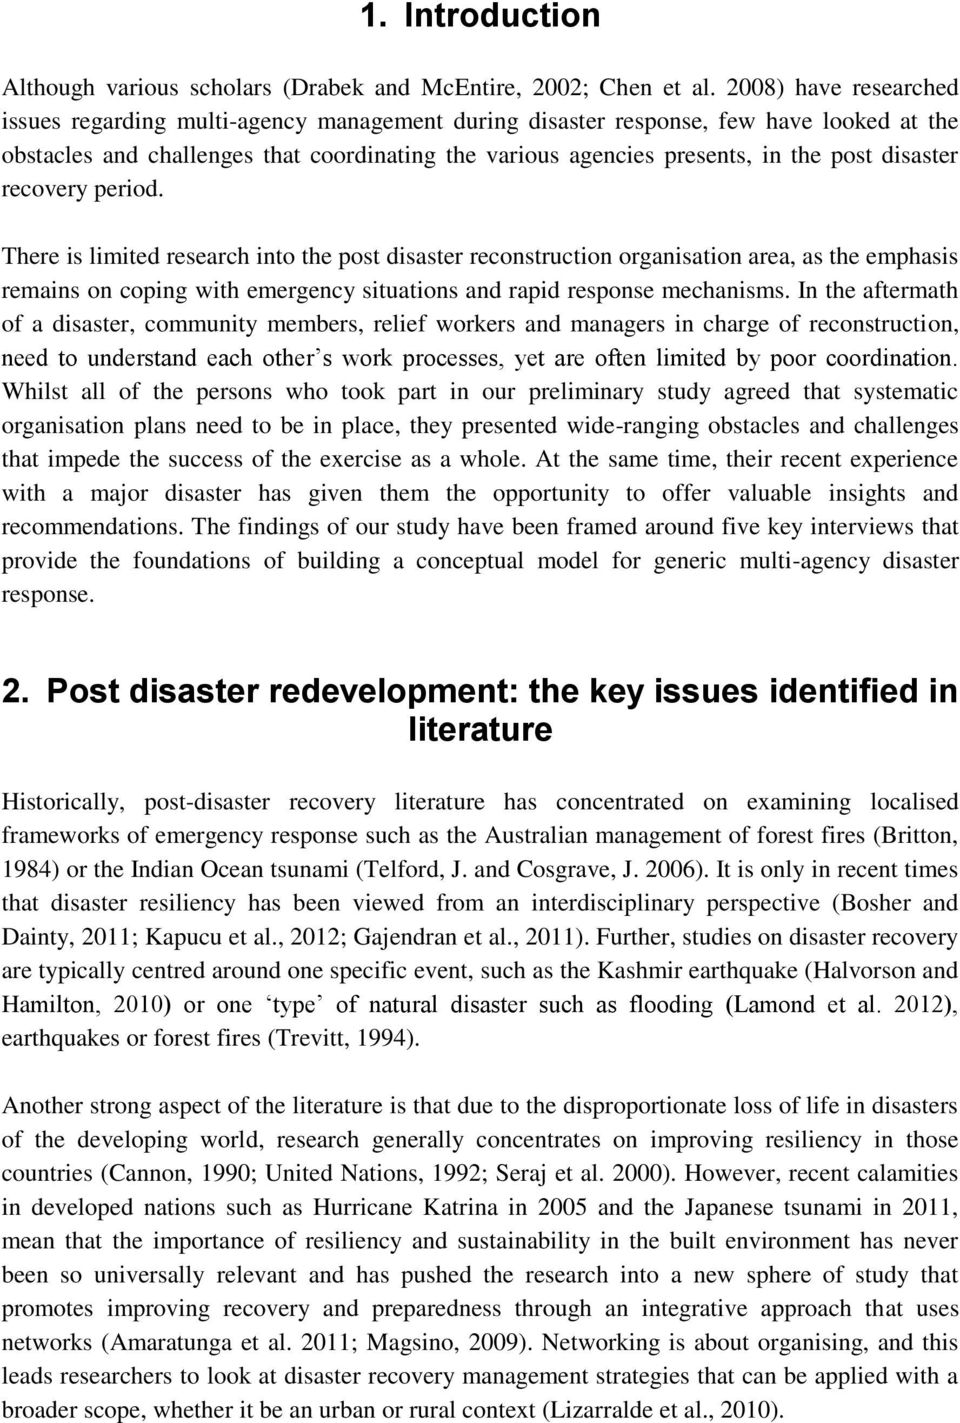 disaster recovery period. There is limited research into the post disaster reconstruction organisation area, as the emphasis remains on coping with emergency situations and rapid response mechanisms.